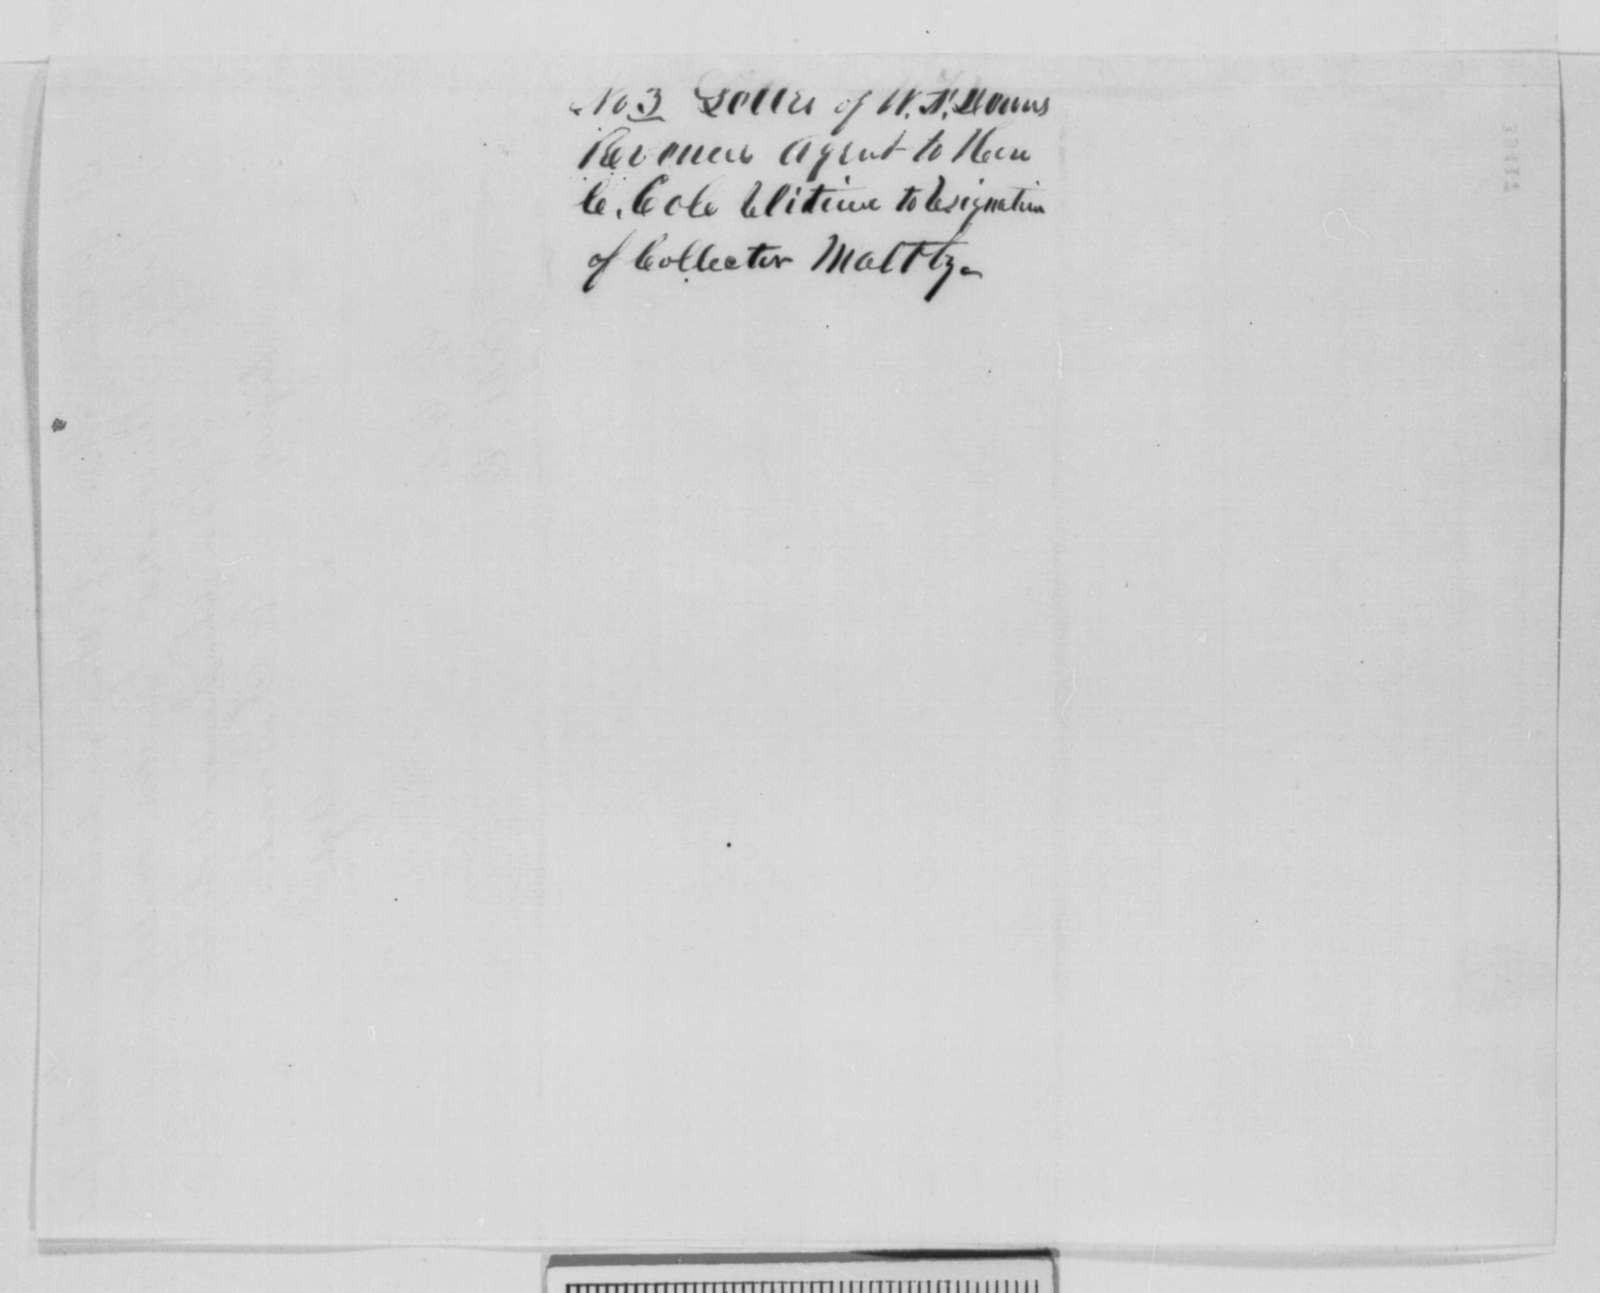 W. F. Downs to Cornelius Cole, Wednesday, December 21, 1864  (Case of Charles Maltby)